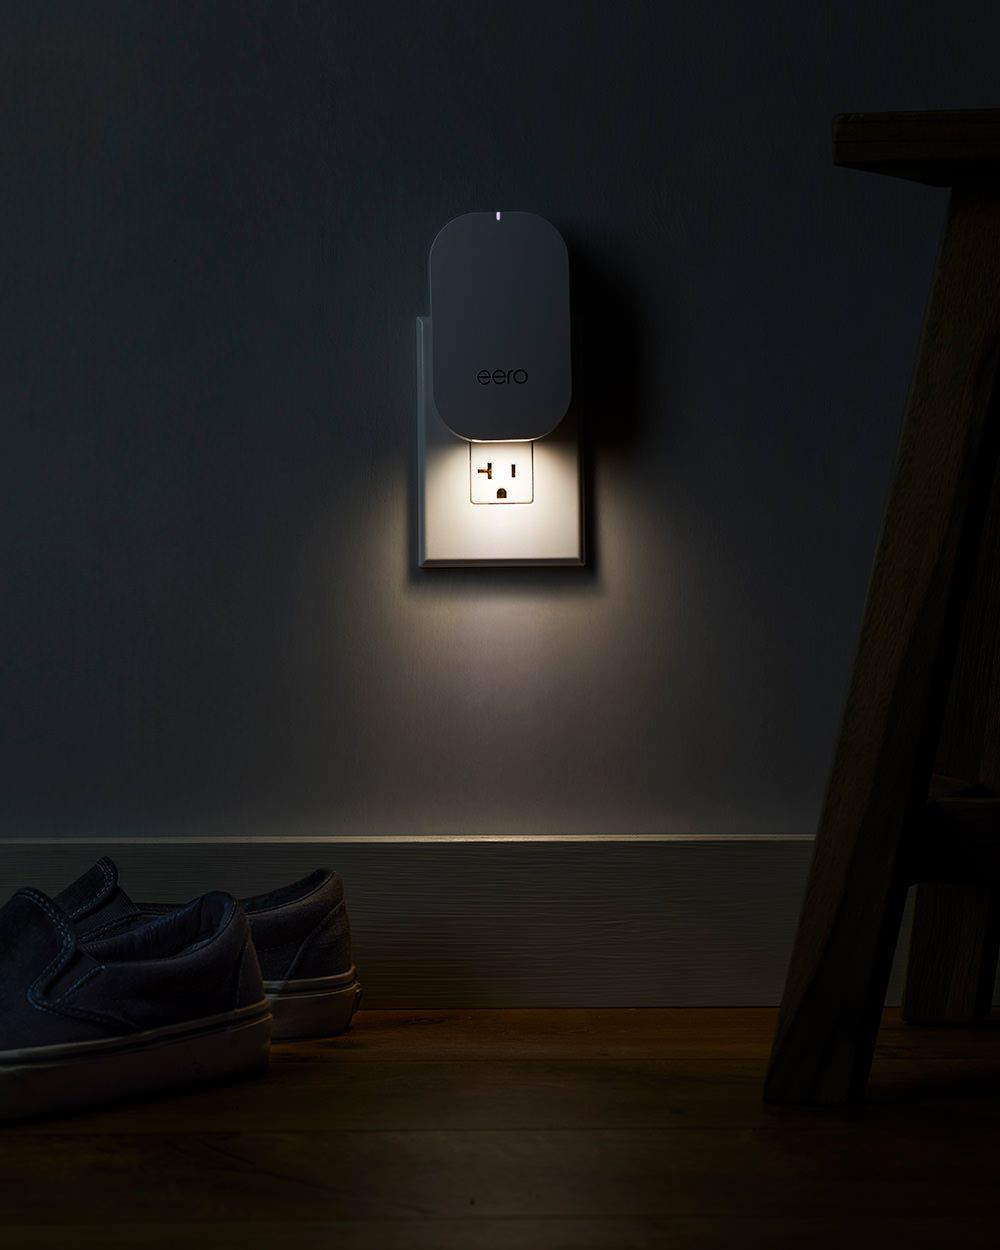 eero Beacon with Nightlight on